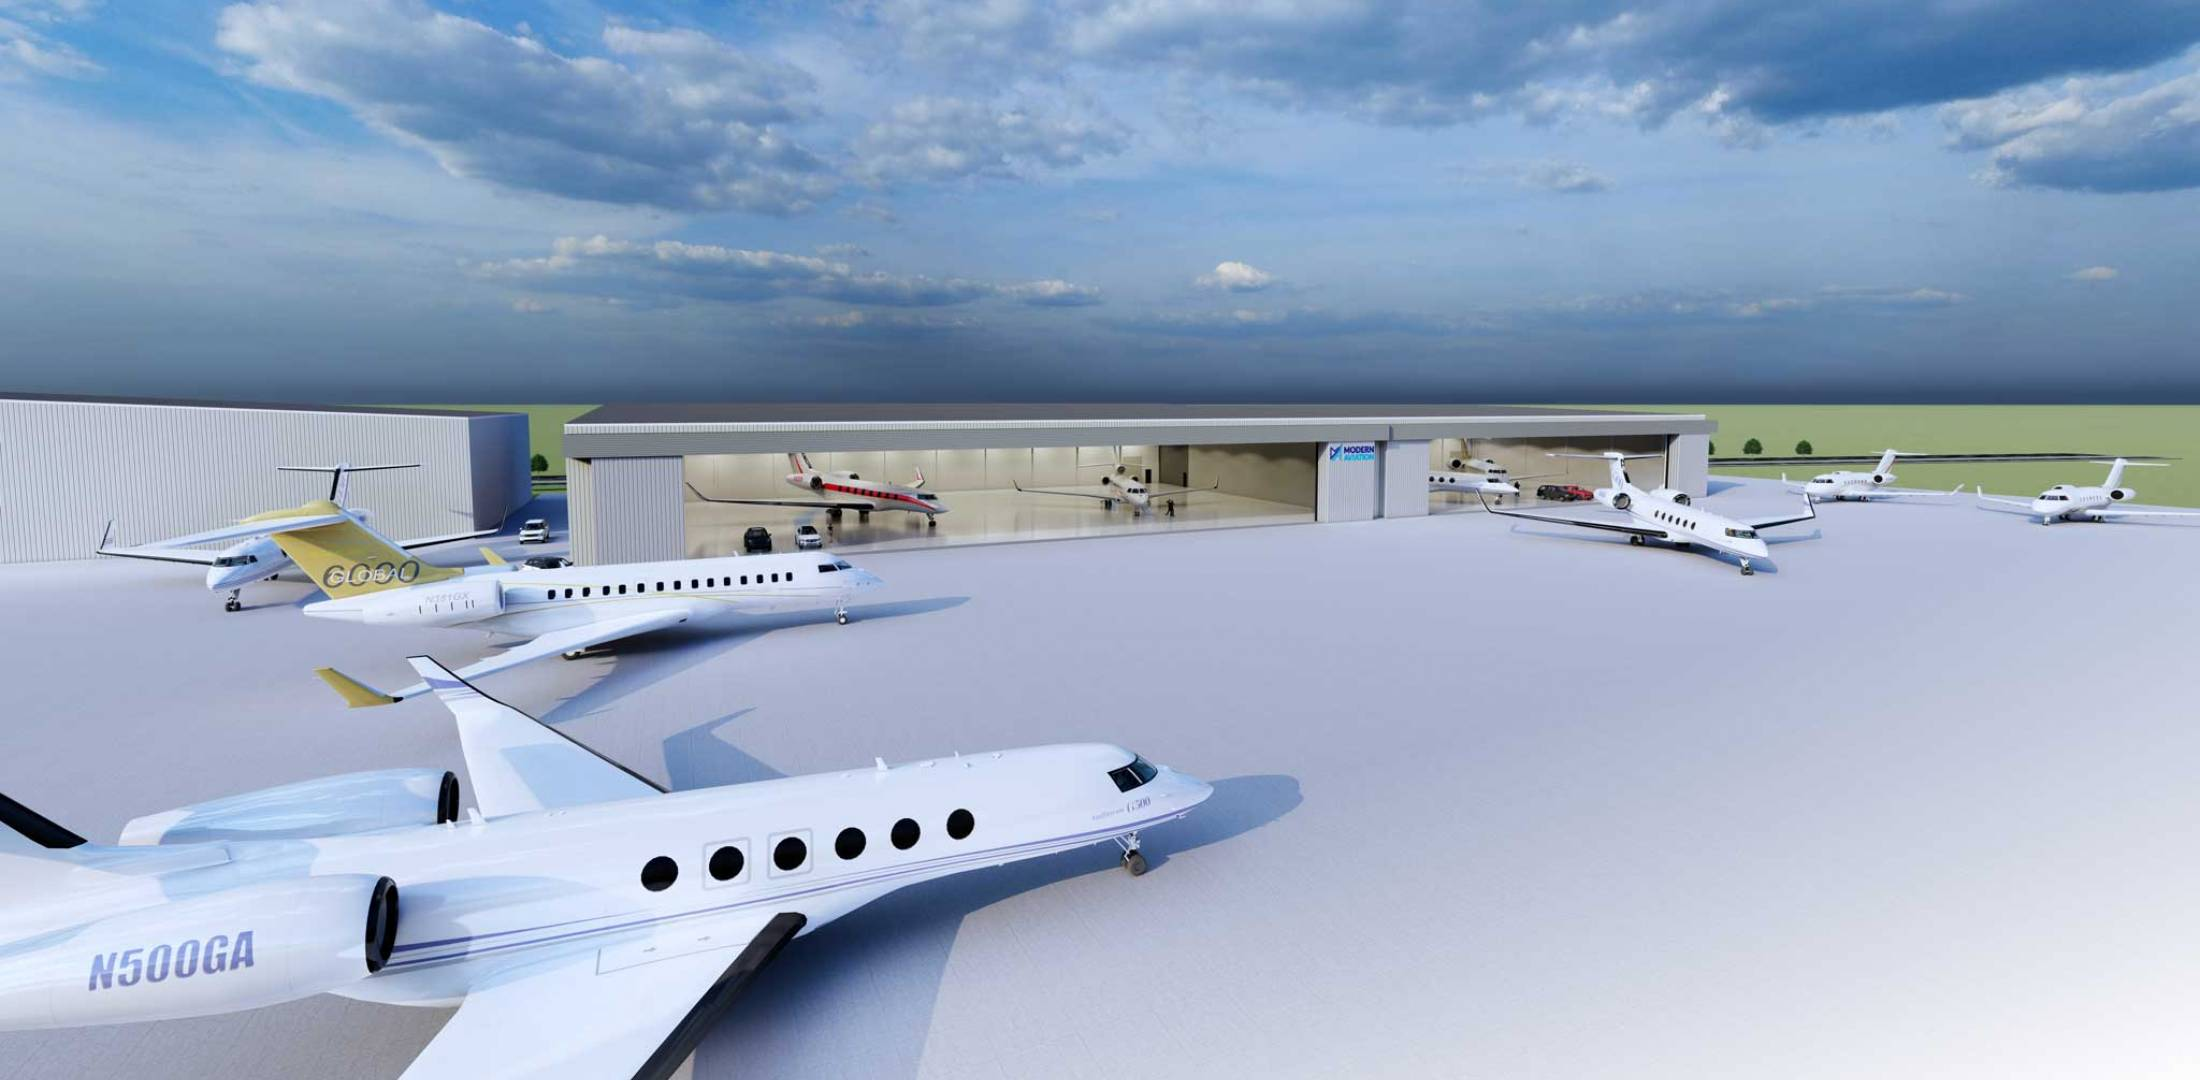 Artist rendering of planned hangar expansion at Modern Aviation Seattle